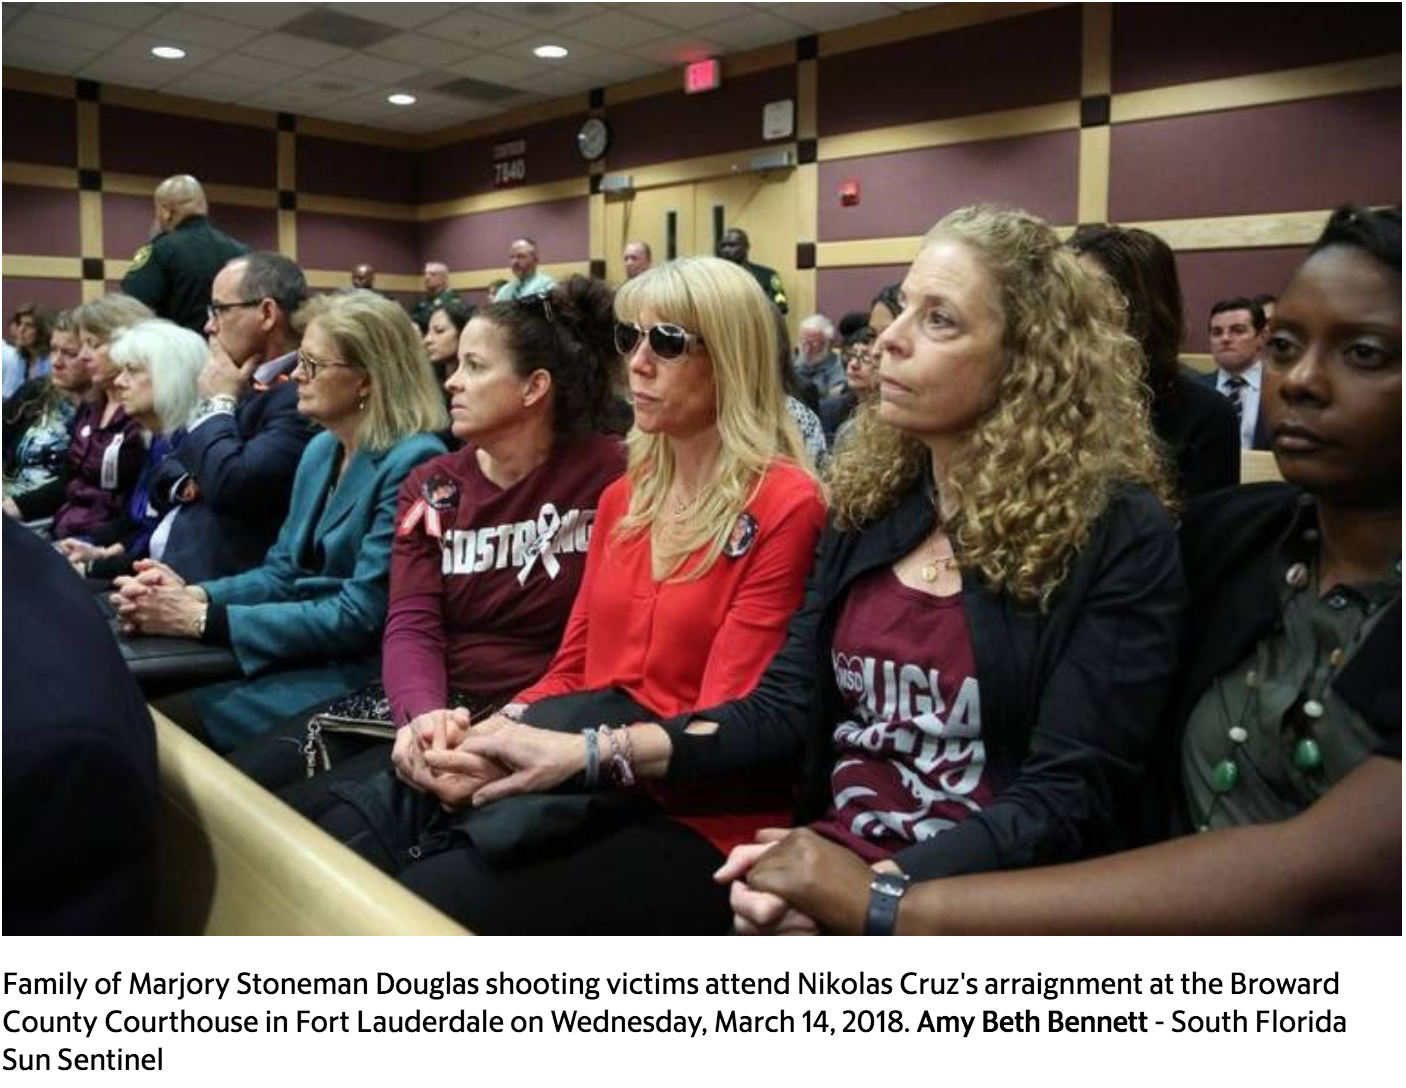 Judge enters not guilty plea for Parkland shooter, who remains mum in court